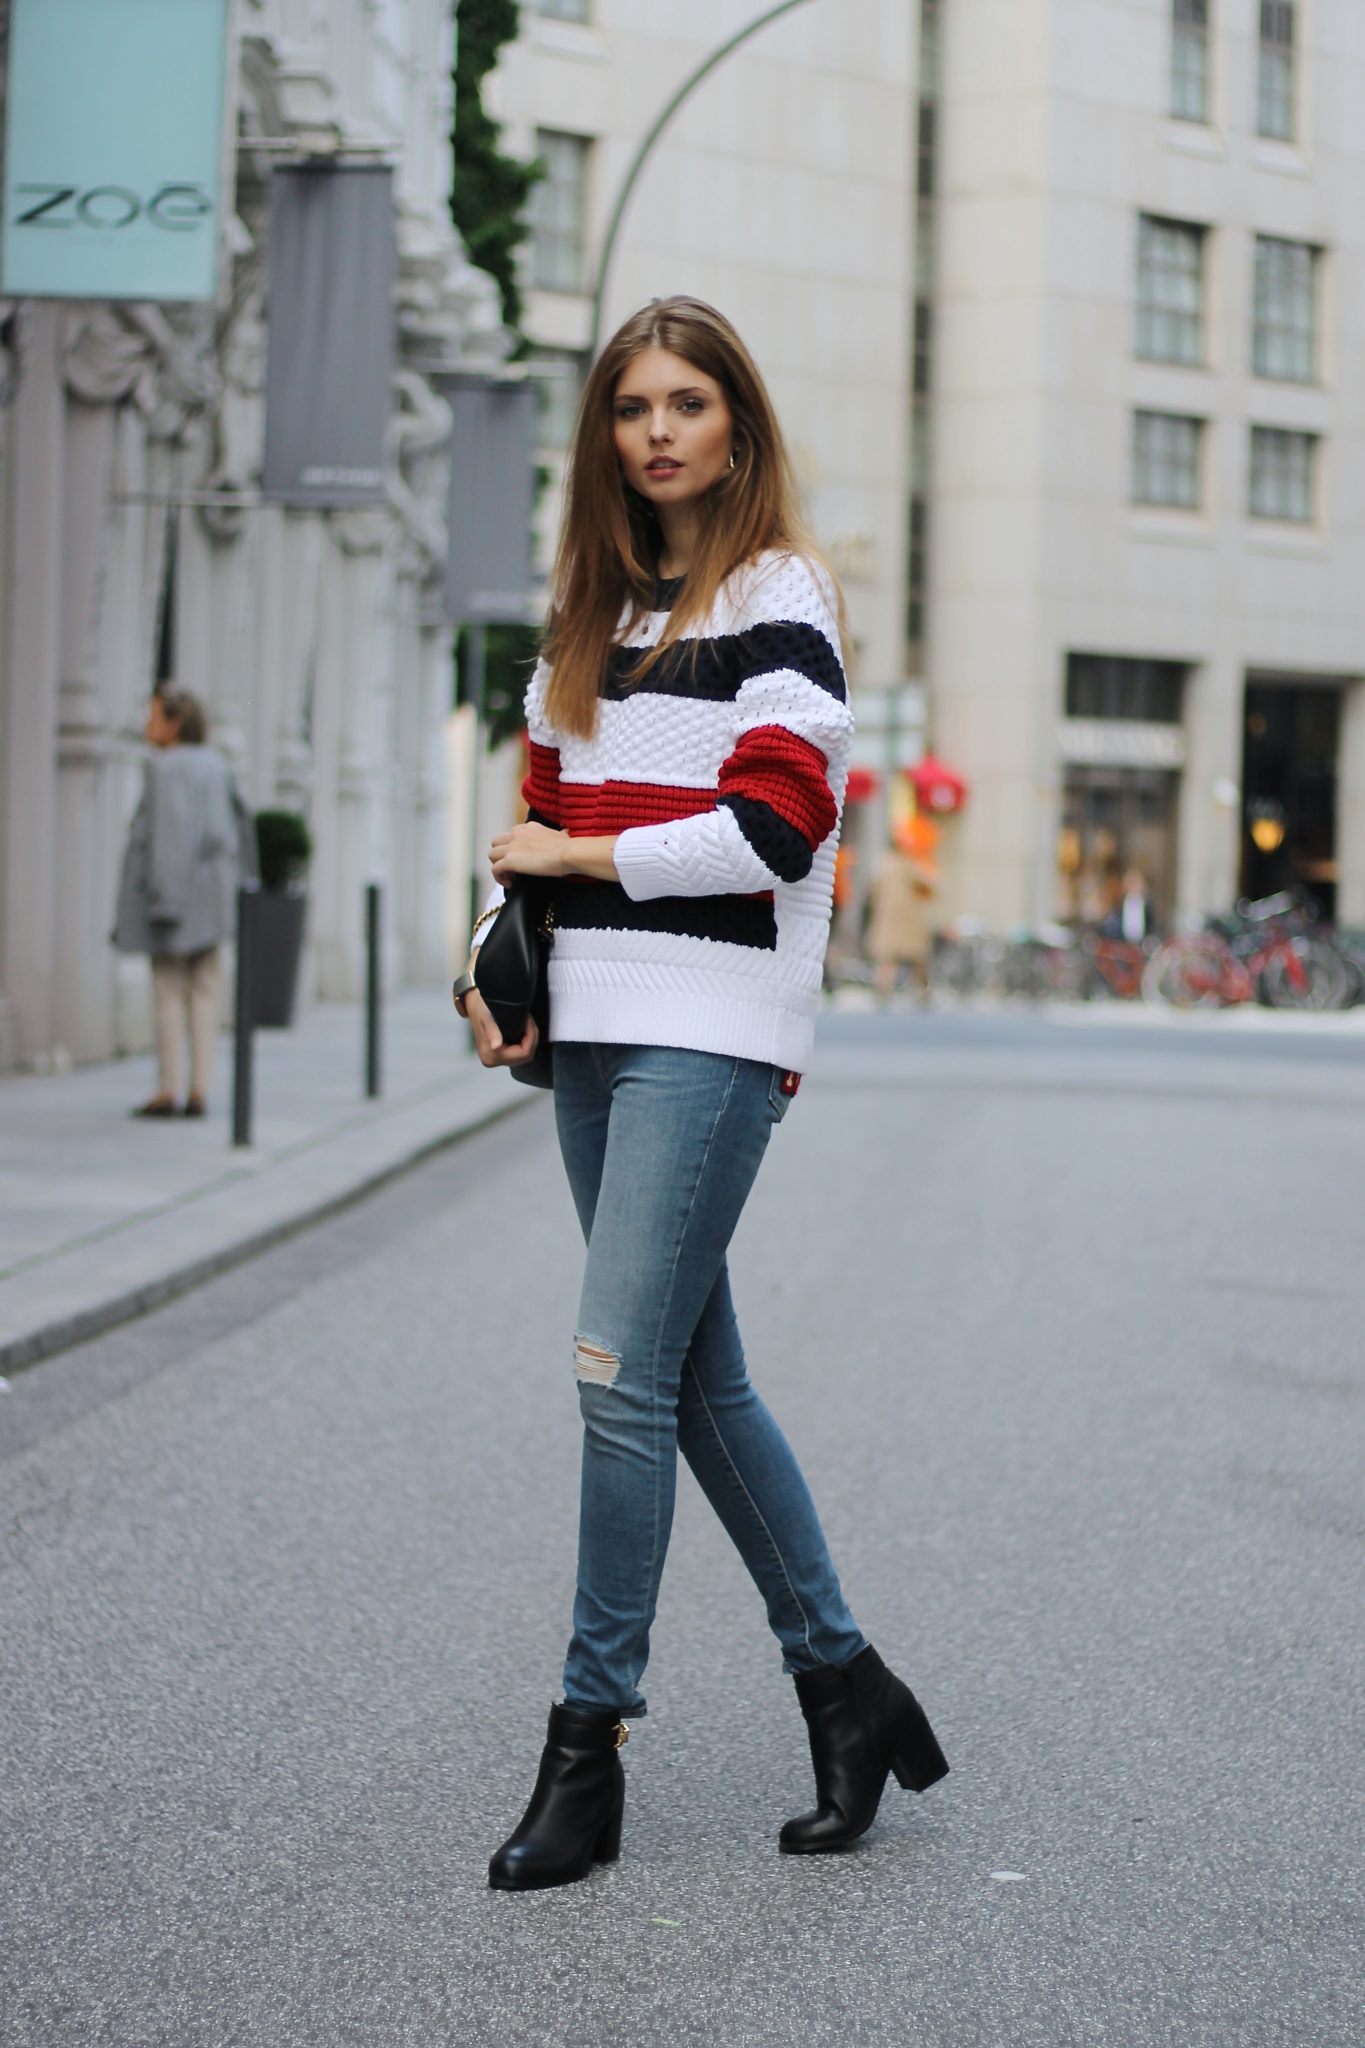 IMG 2964 - COLORFUL AUTUMN x TOMMY HILFIGER